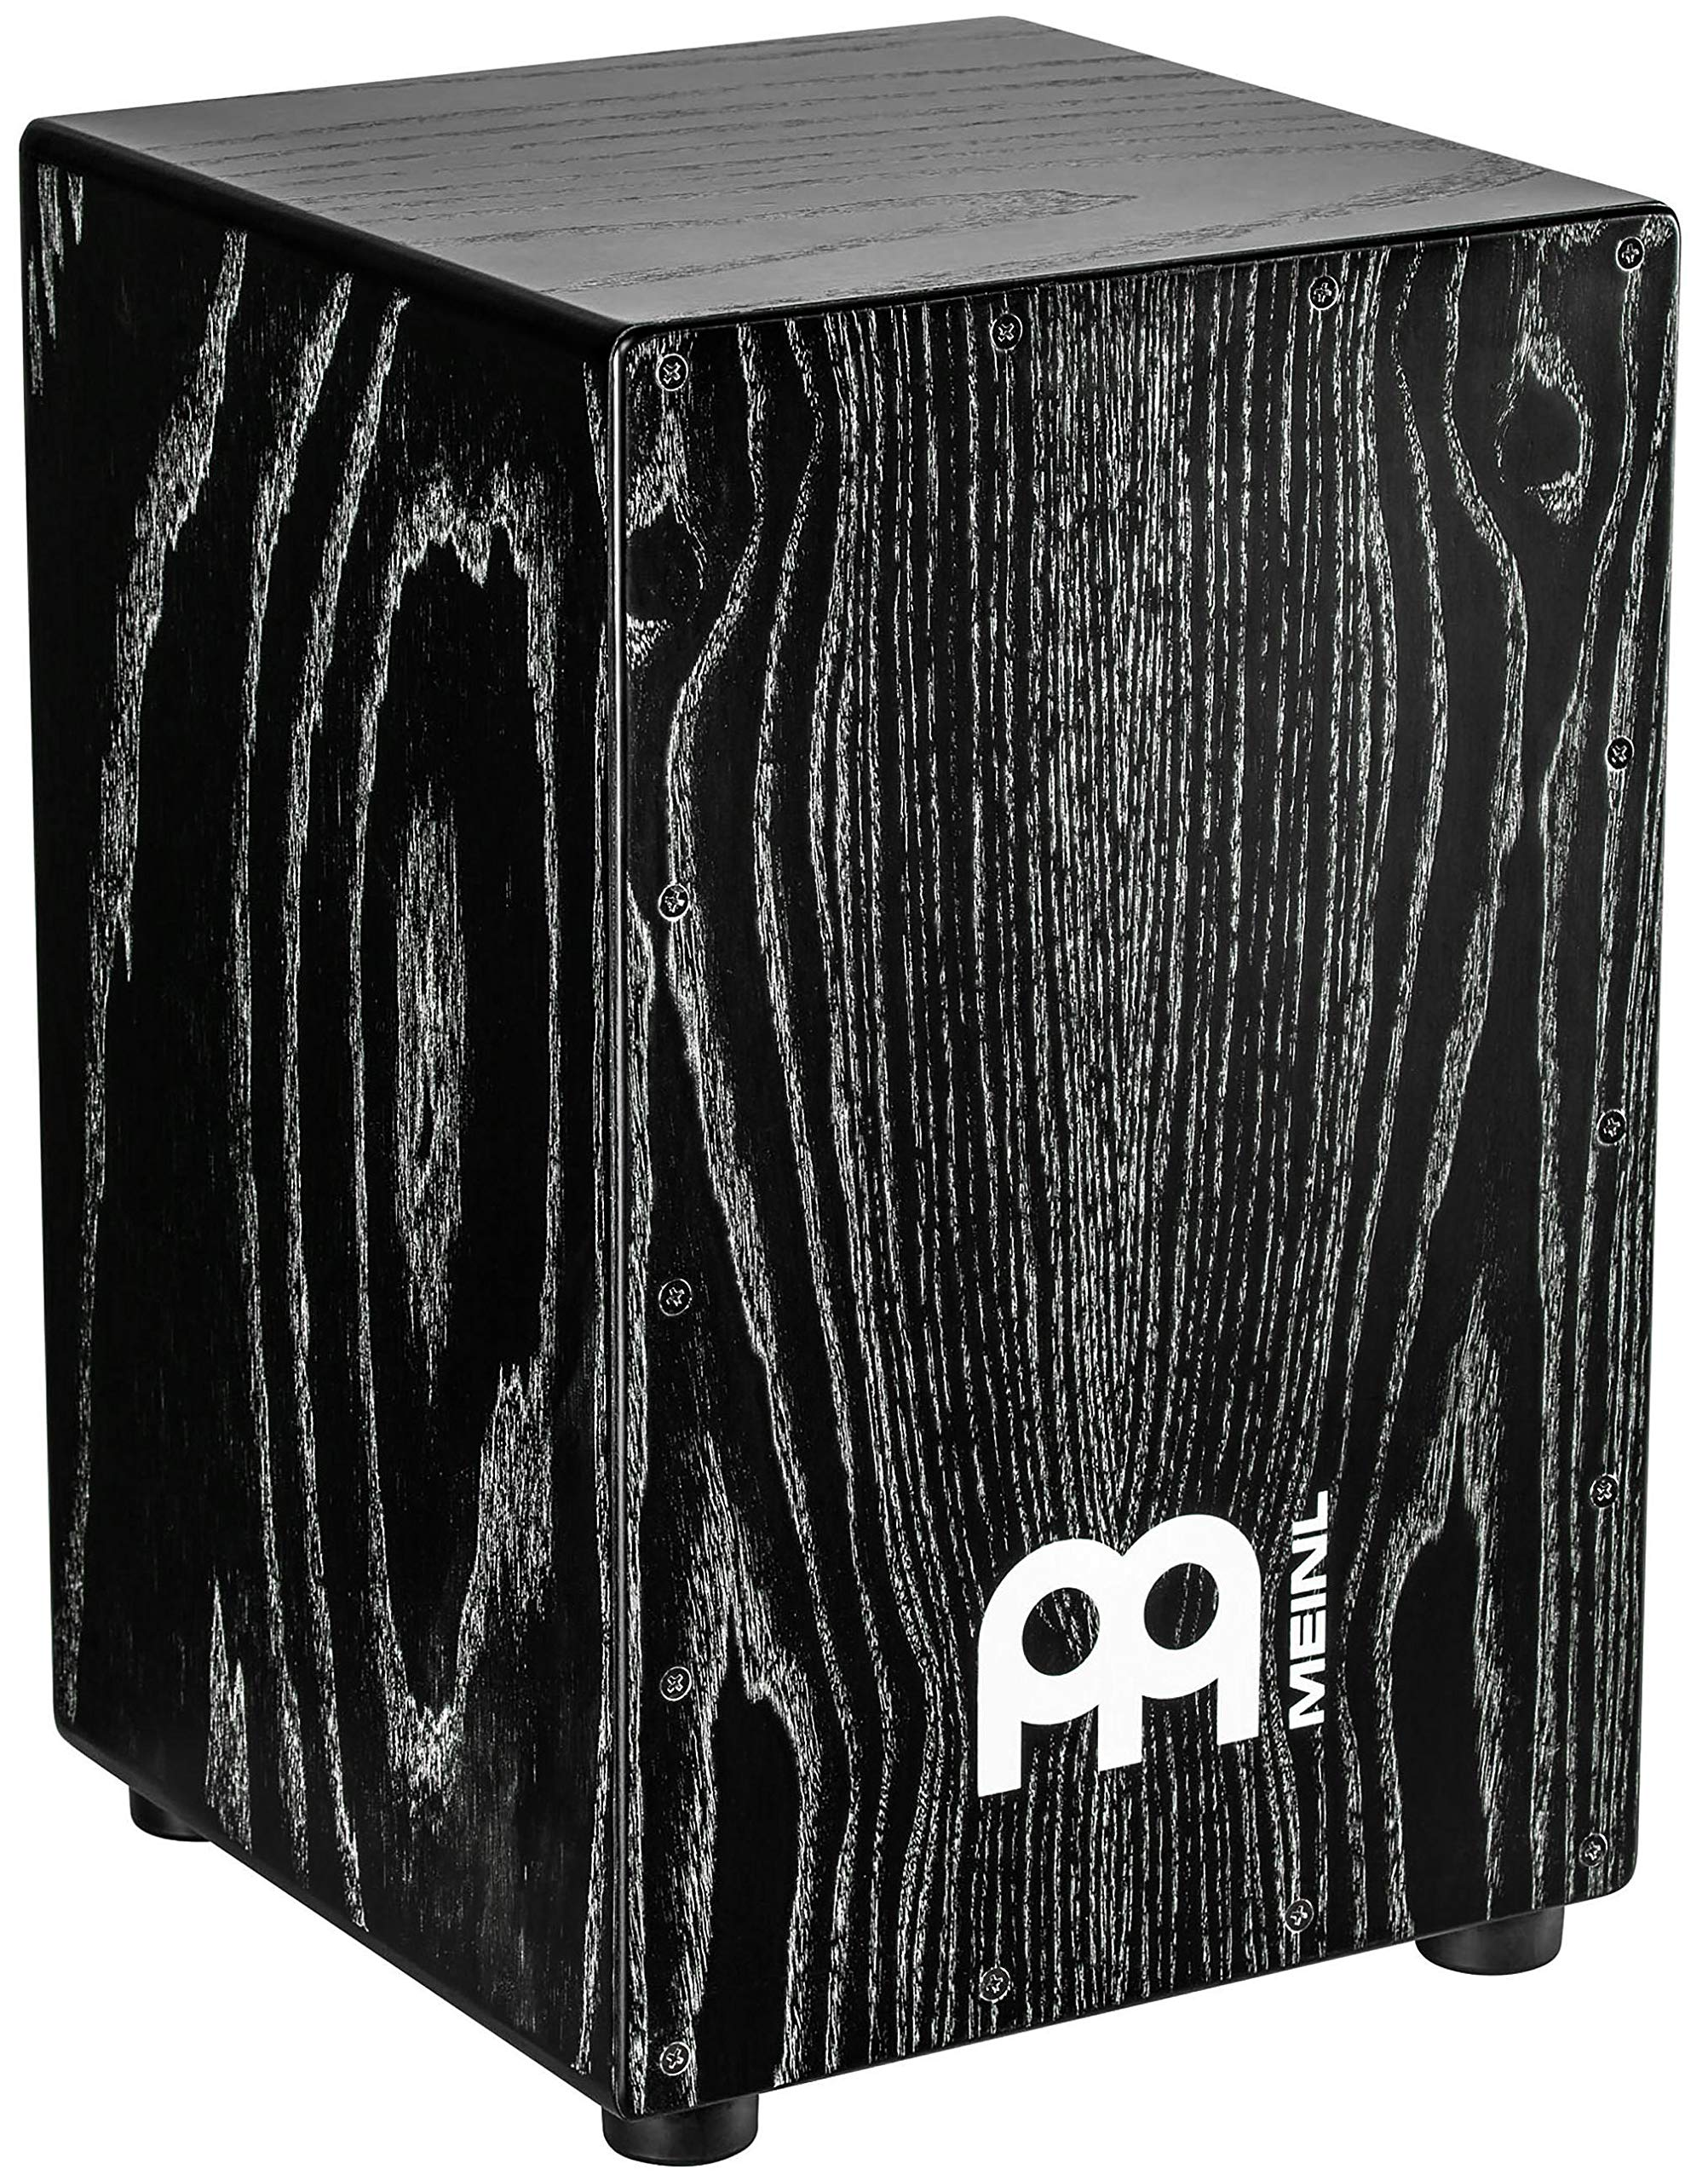 Meinl Percussion Cajon Box Drum with Internal Snares - NOT MADE IN CHINA - American White Ash Vintage Black, Full Size, 2-YEAR WARRANTY, MCAJ100VBK)